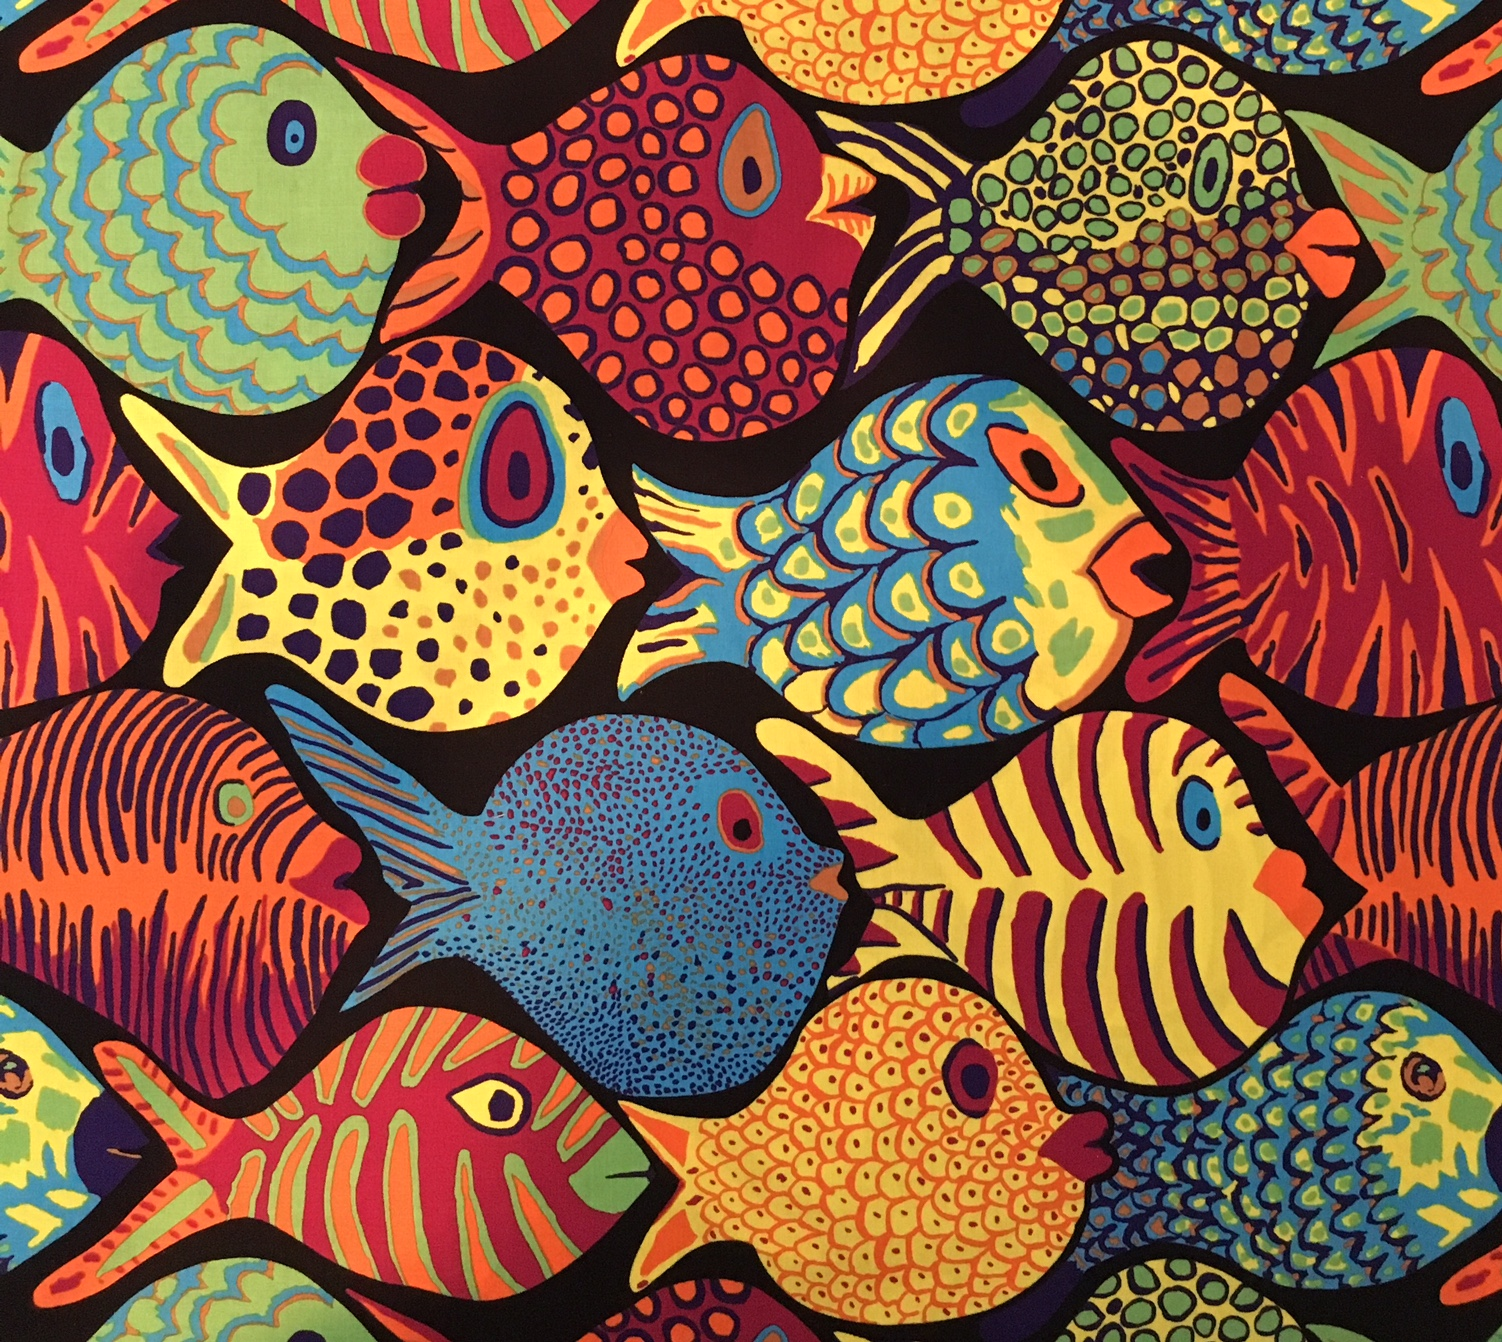 All the fishes....  (they are so cool!).